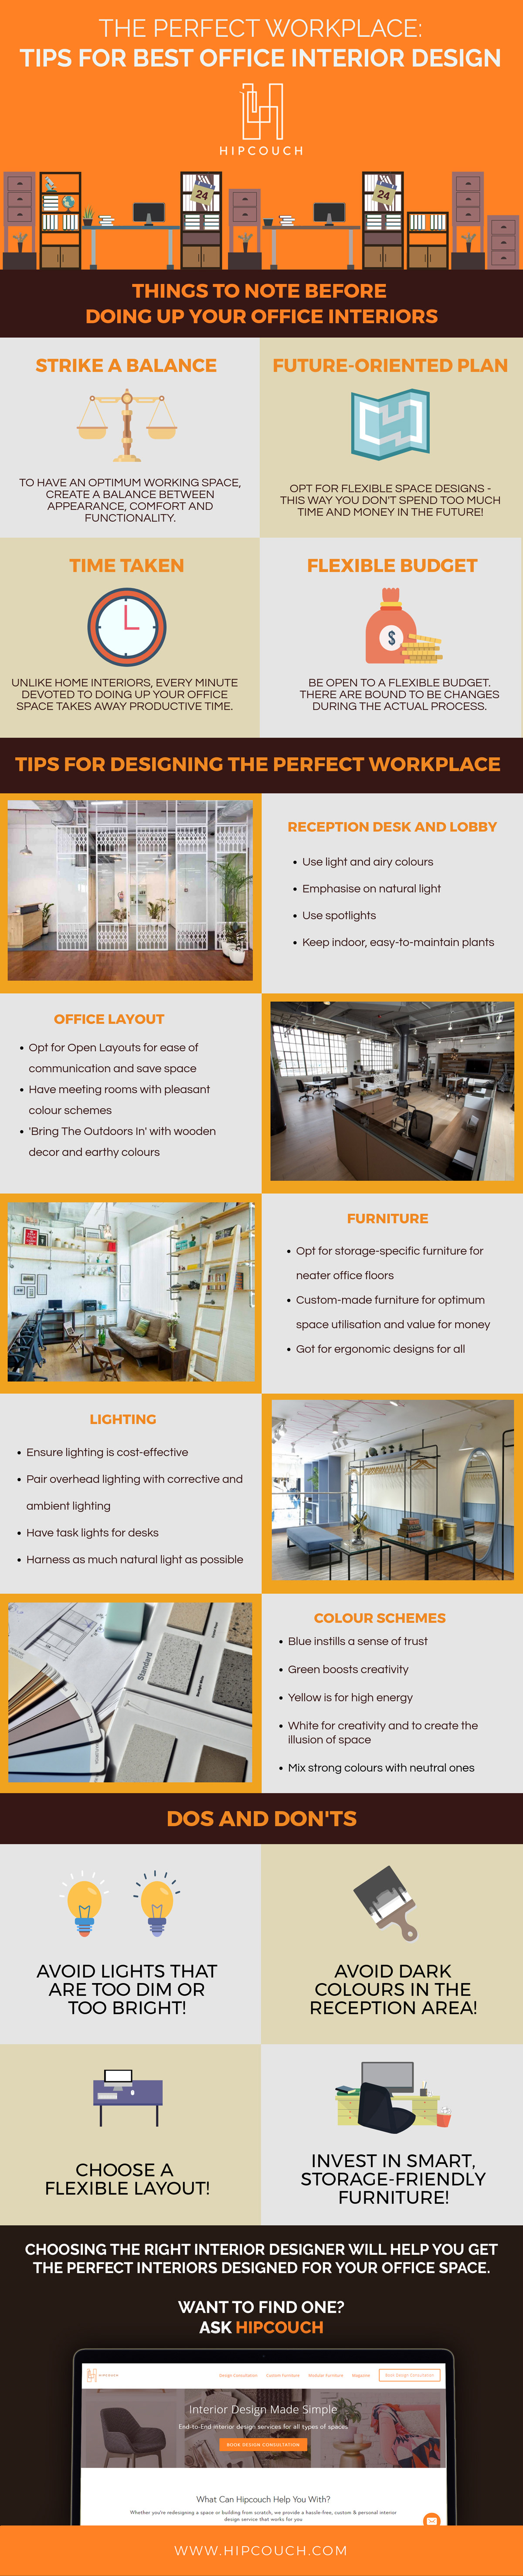 Office-Interior-Tips---Infographic.jpg